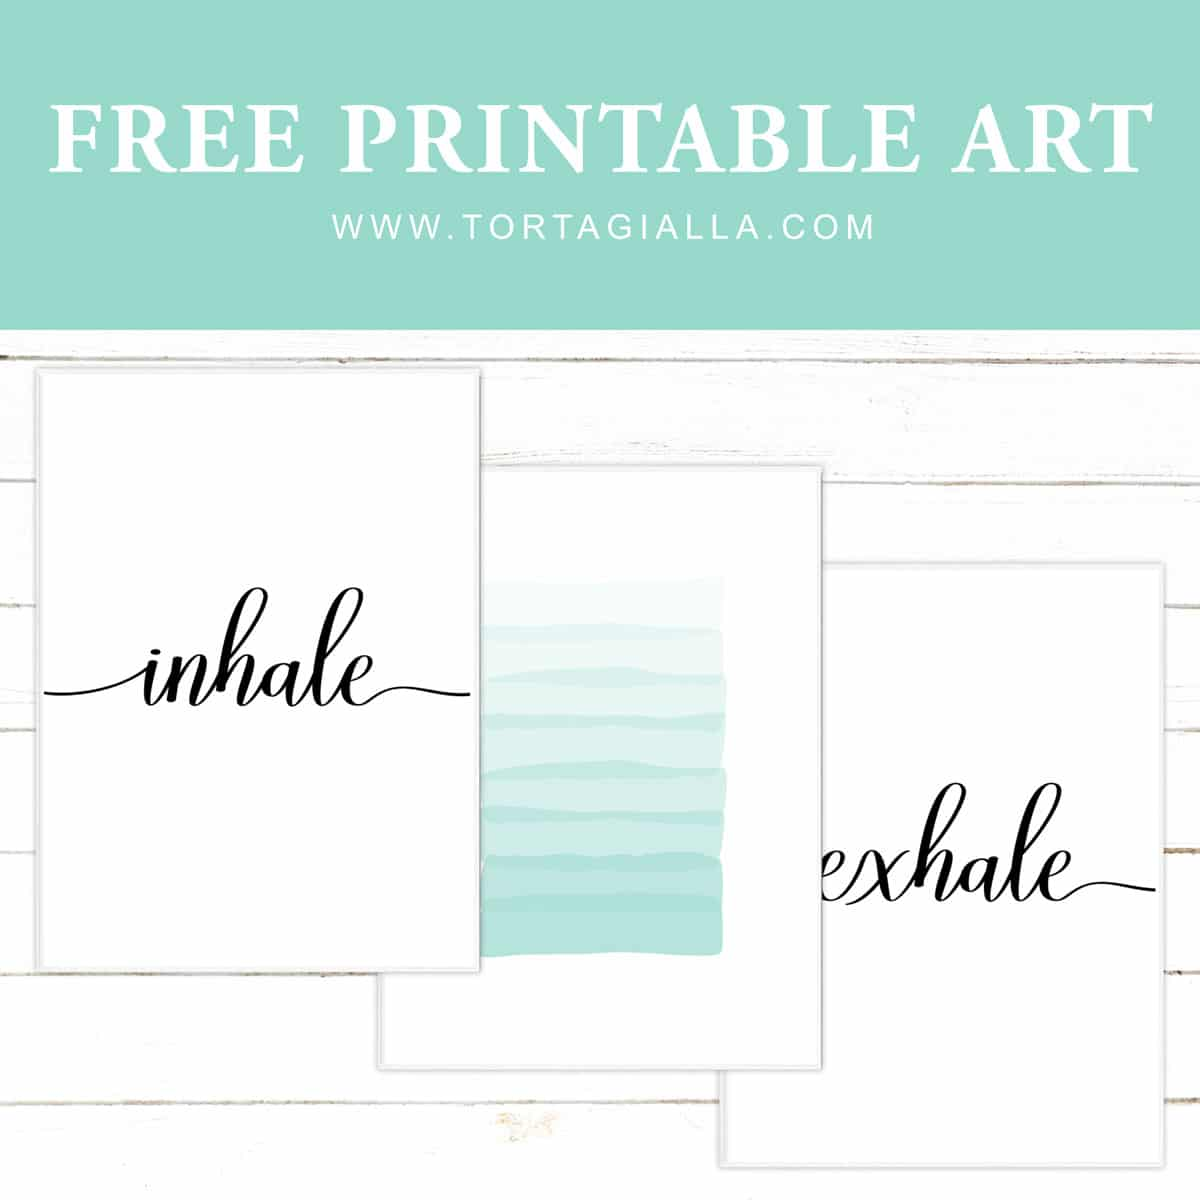 Set of inhale exhale printables for free download.